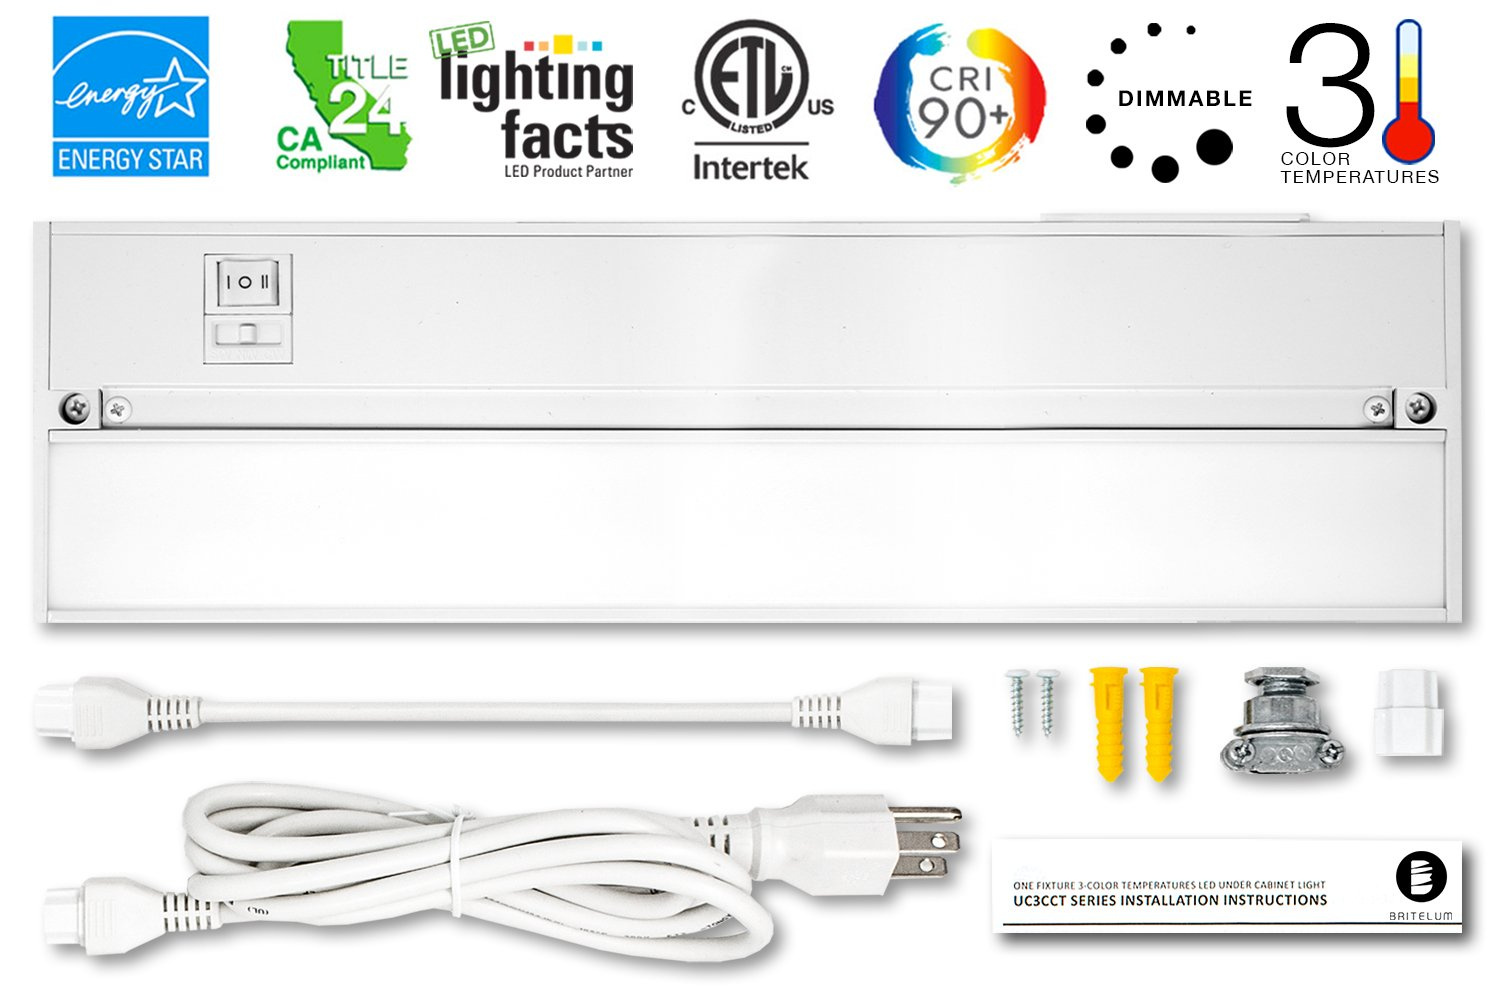 Britelum 14 Inch, 3-in-1 Color Temperature: Dimmable LED Under Cabinet Lighting; 2700K/ 3500K/ 4000K w/ CRI90+, Hardwired or Plug In, Energy Star, CA T24,& ETL Listed, 120V 7W 360 Lumens, White Finish by Britelum